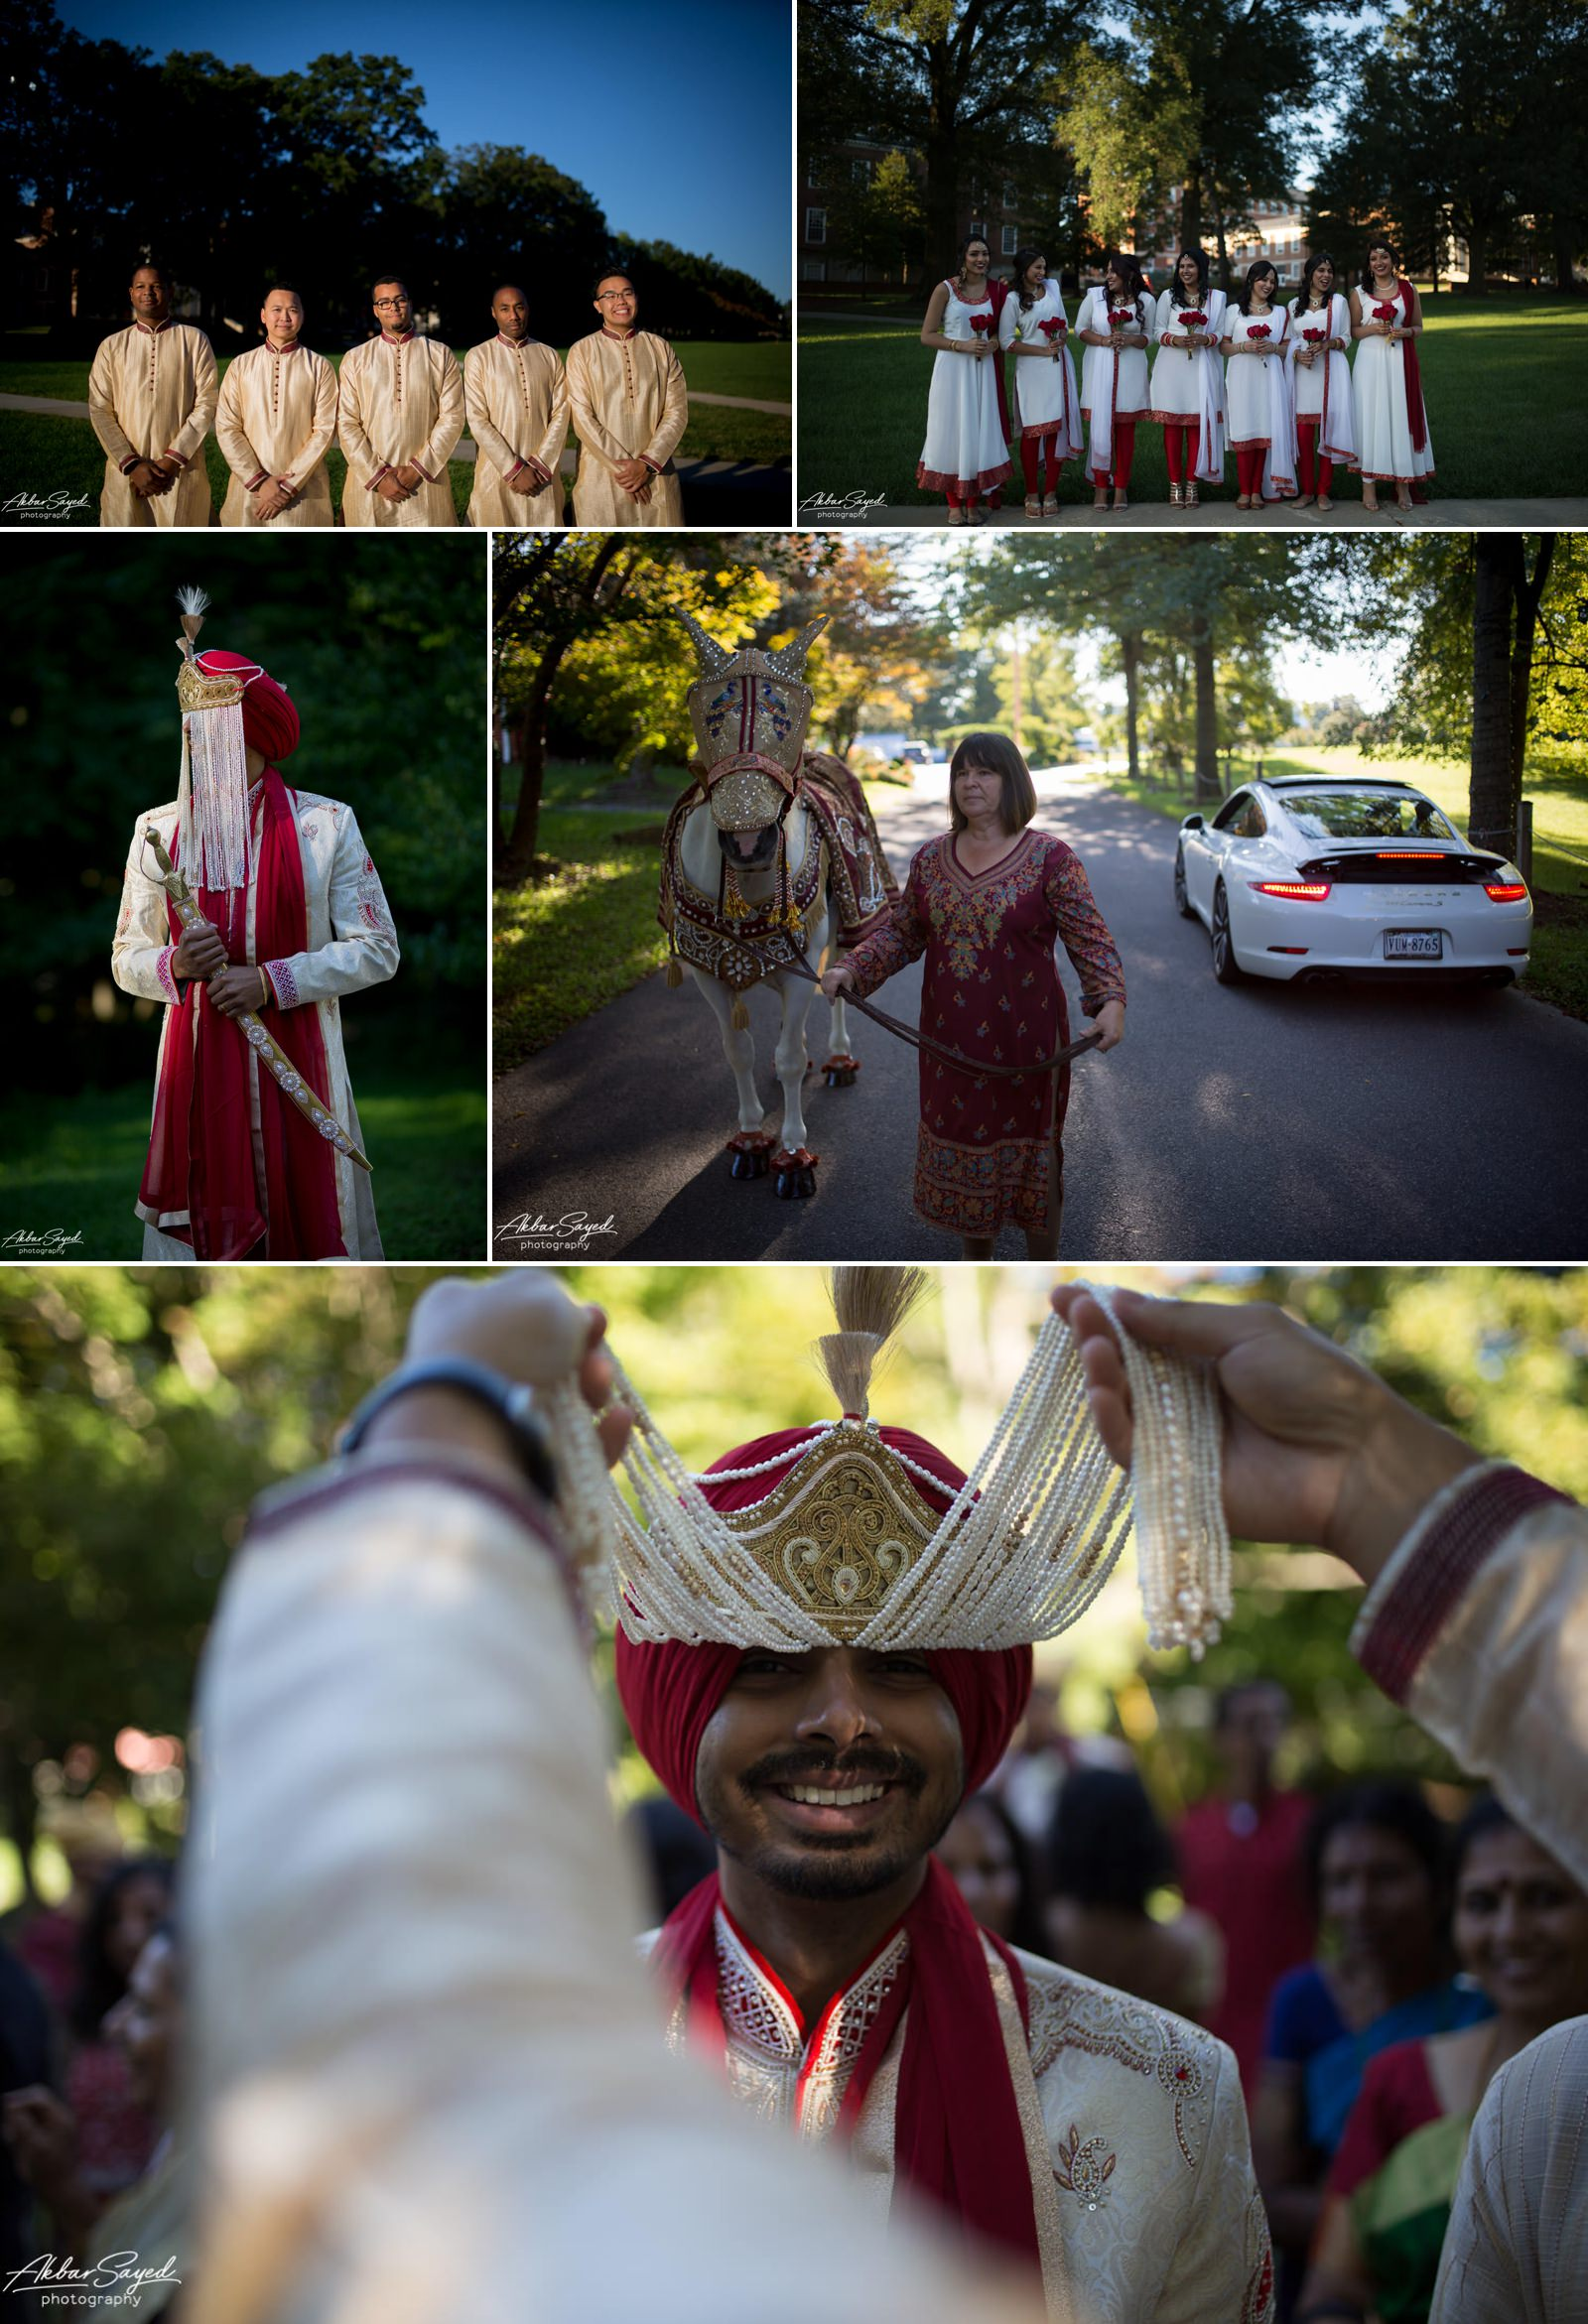 A photo collage of a couple during their Hindu - Sikh wedding at Guru Nanak Foundation of America and The Villa in the Washington D.C. area.